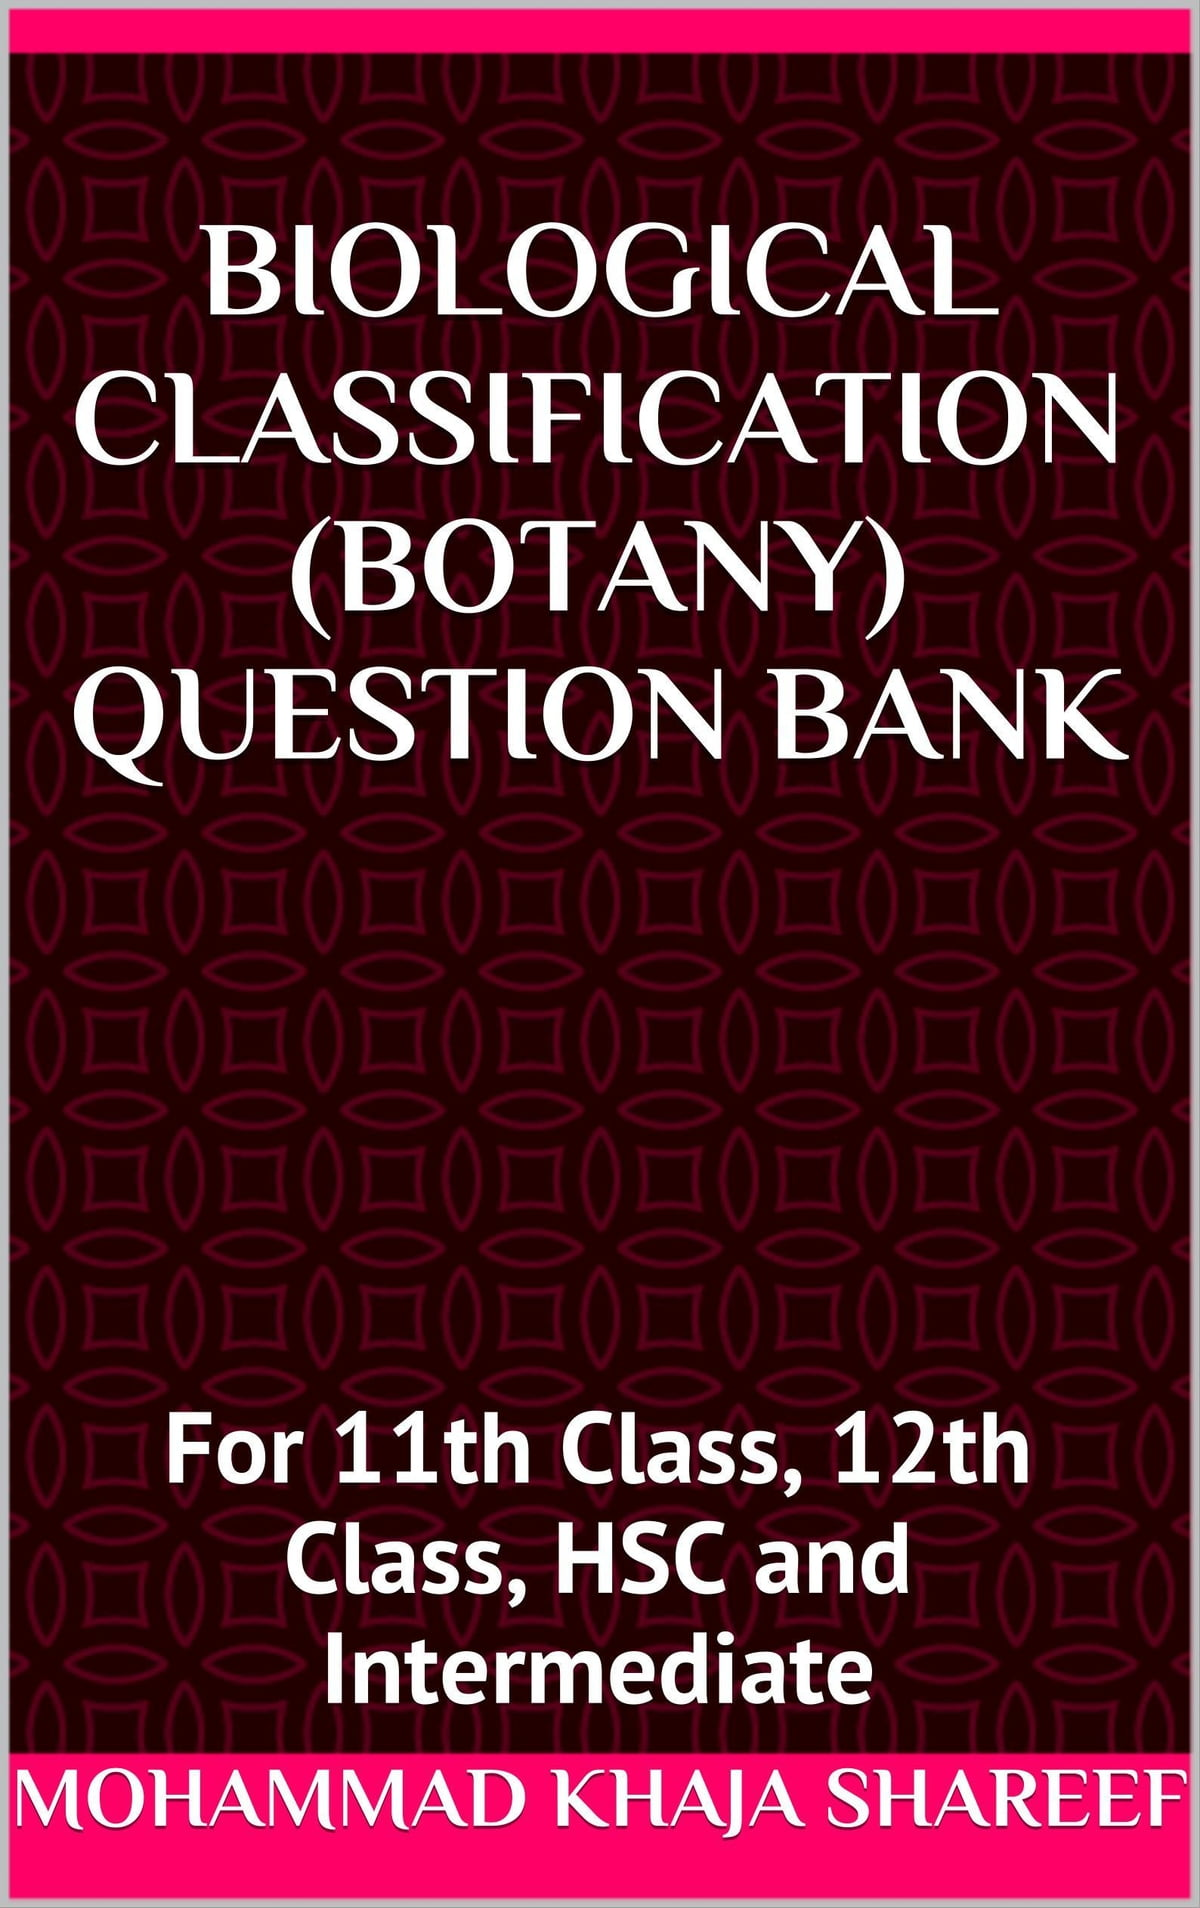 Biological Classification Botany Question Bank eBook by Mohmmad Khaja  Shareef - 9781311552600 | Rakuten Kobo